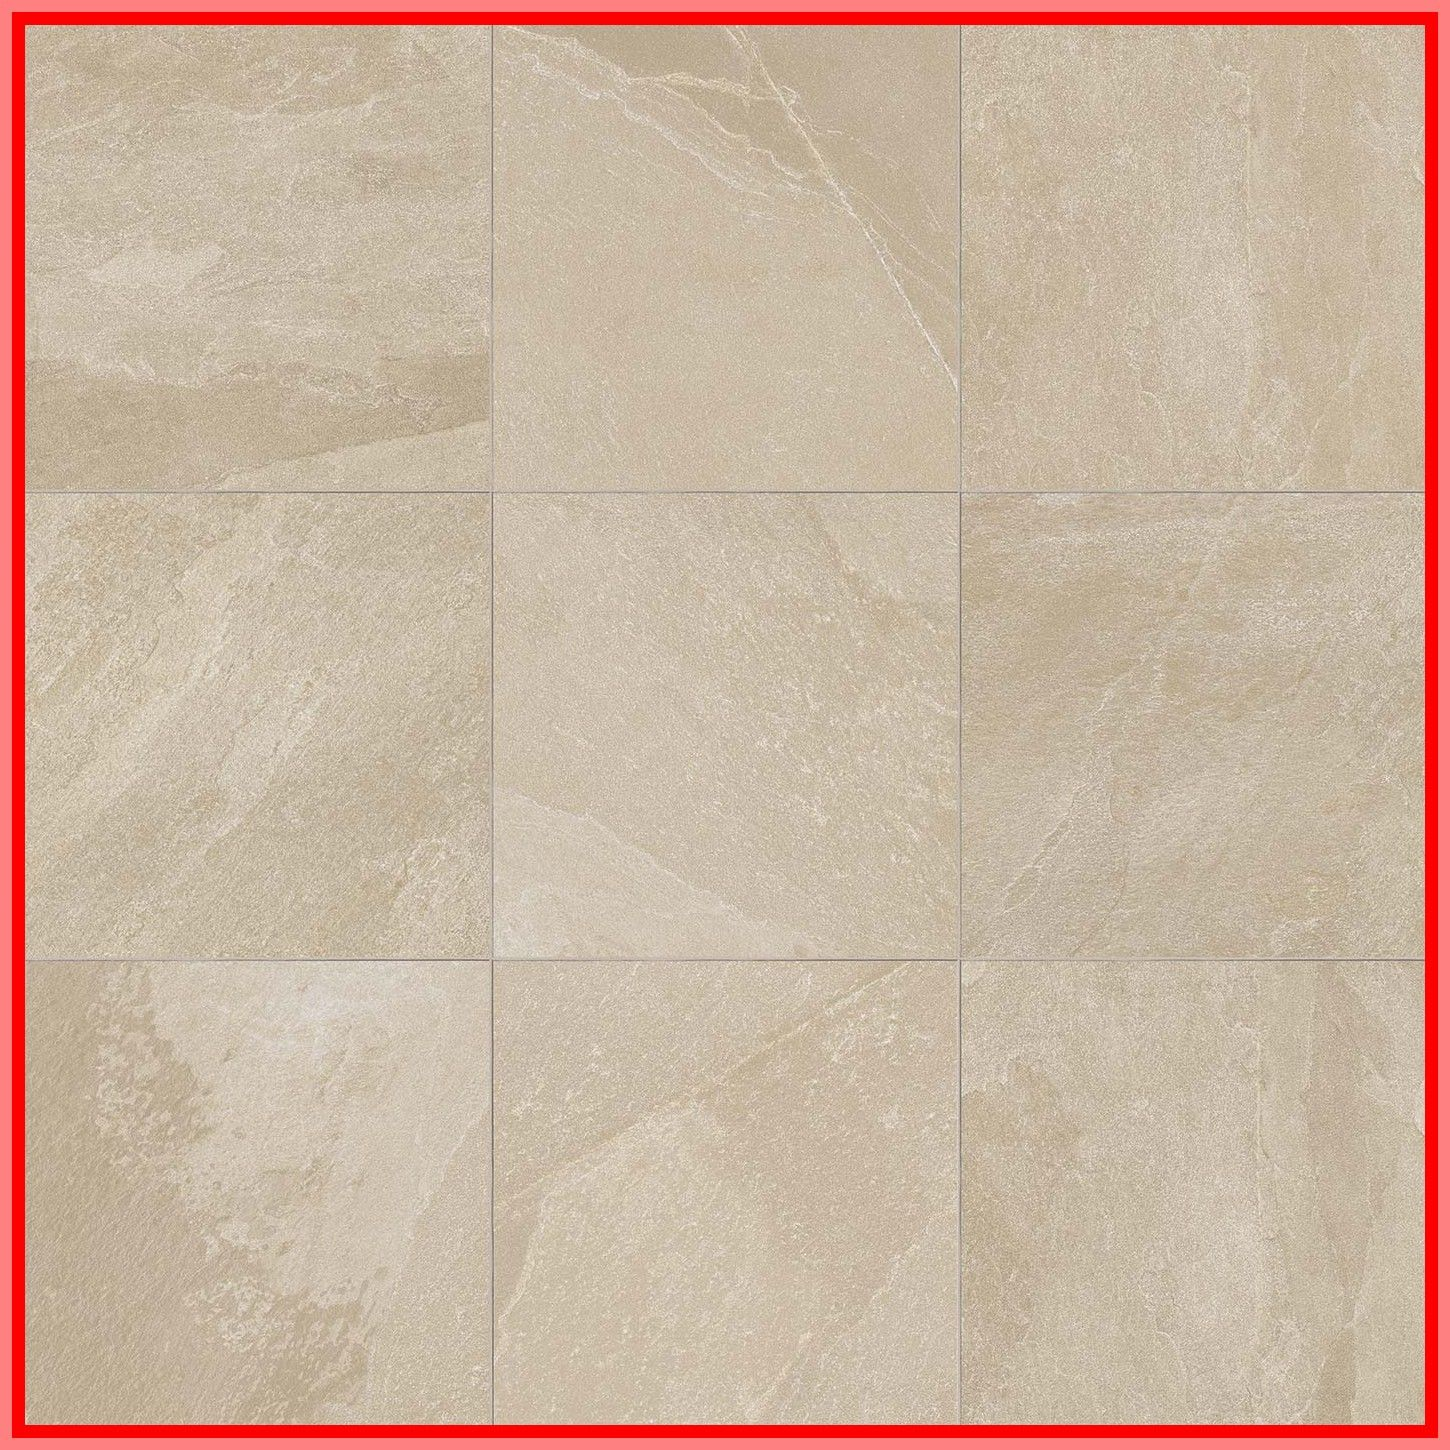 70 Reference Of Floor Tile Outdoor Cream Marble Tile In 2020 Tile Floor Beige Marble Tile Cream Marble Tiles